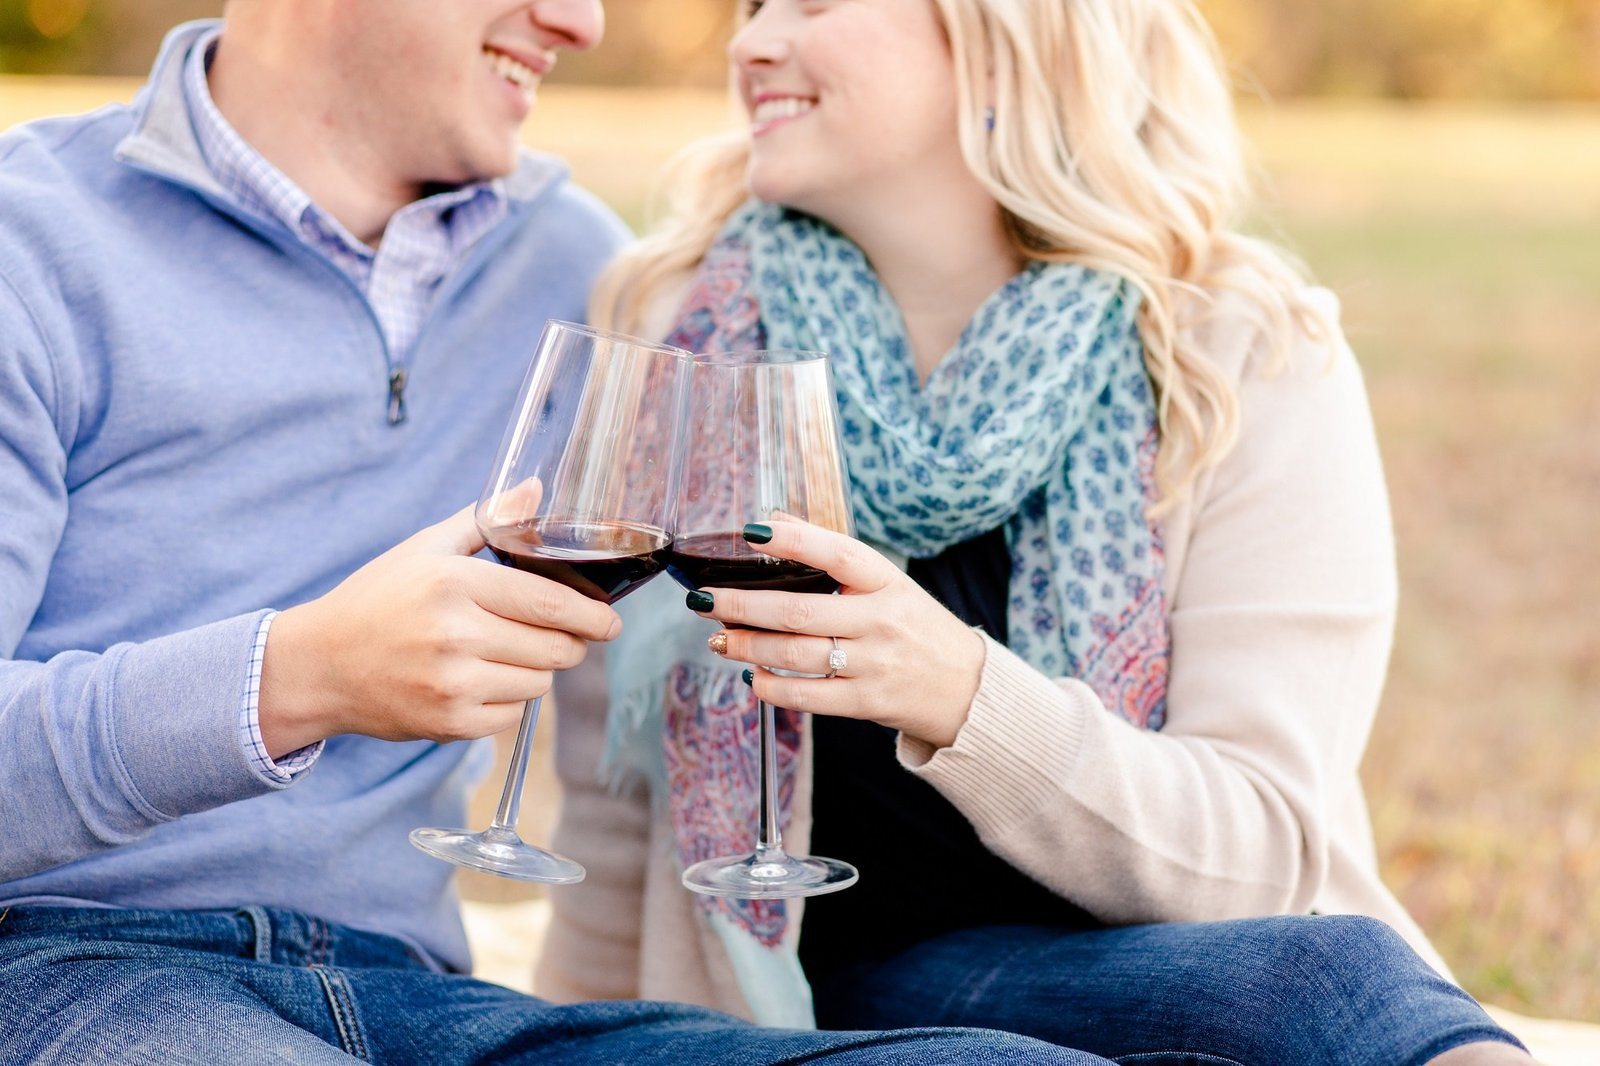 Engaged couple sharing glass of wine